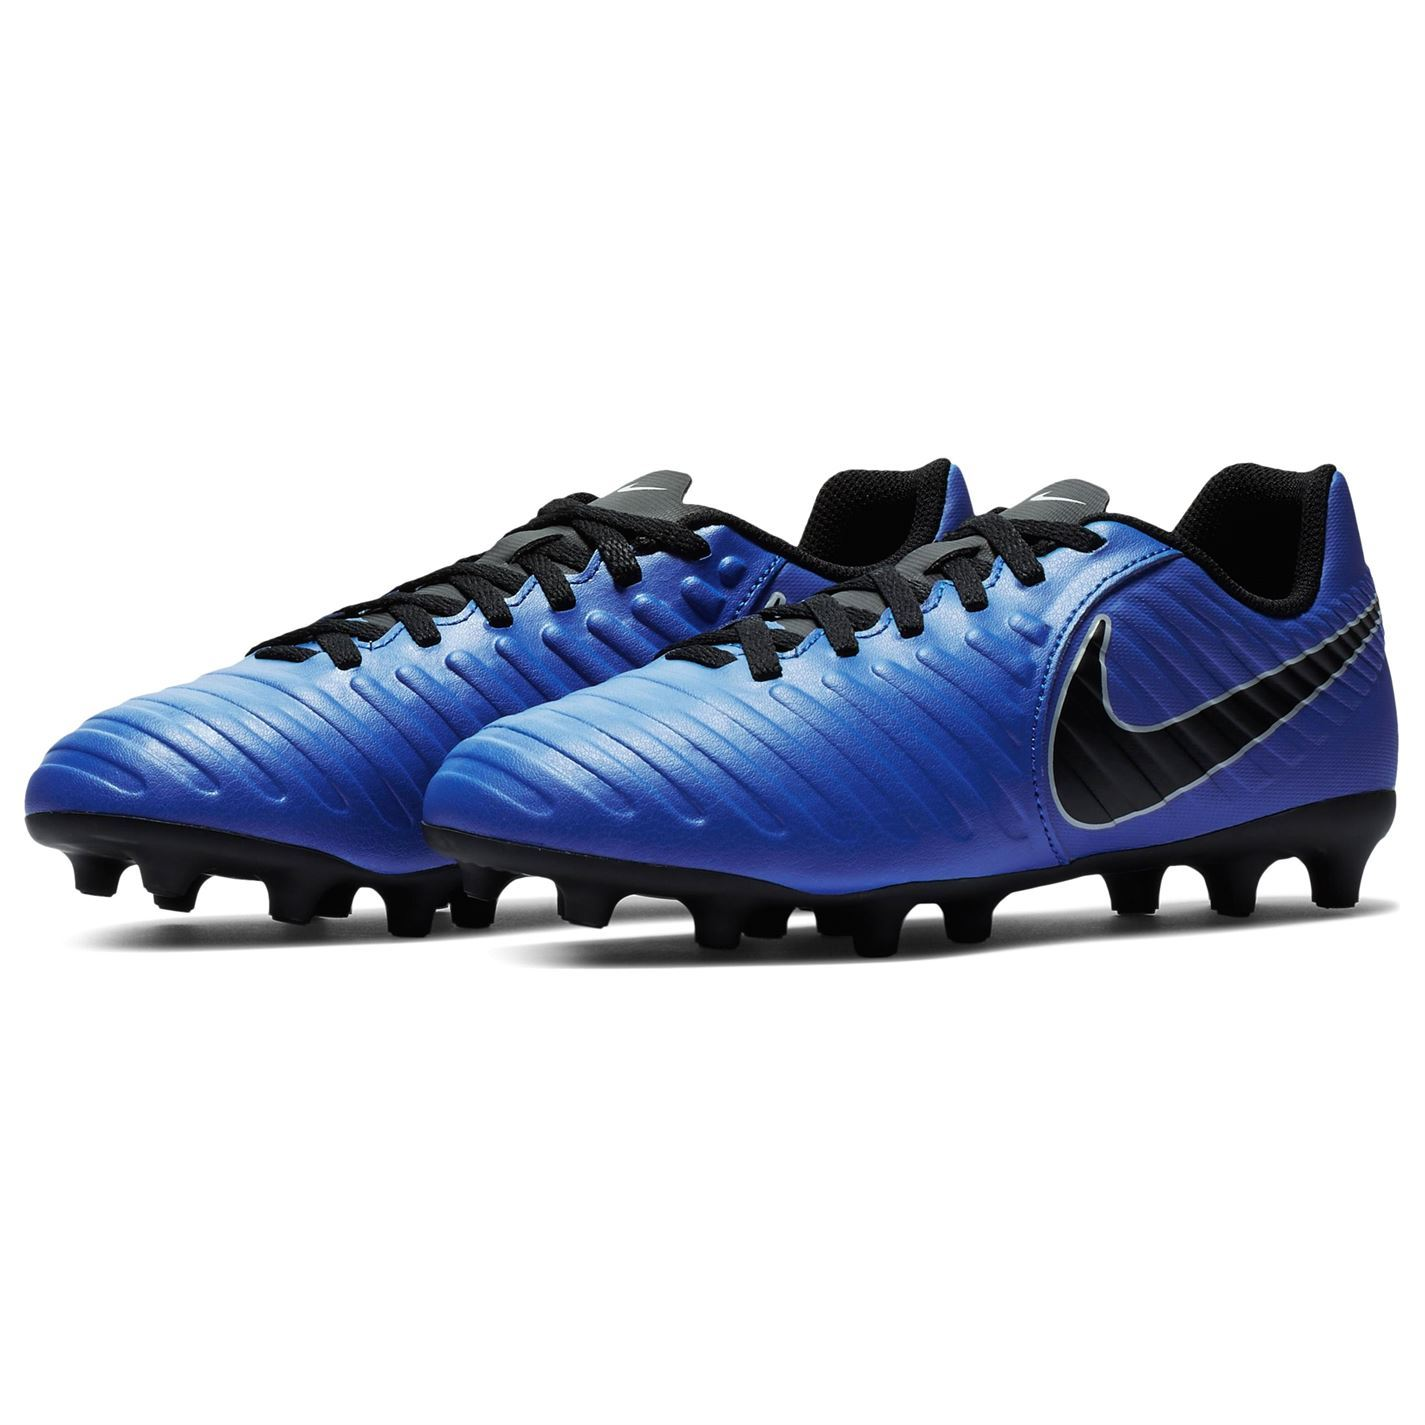 quality design 2652b a46d2 Nike Tiempo Legend Club FG Firm Ground Football Boots Childs Soccer Shoes  Cleats